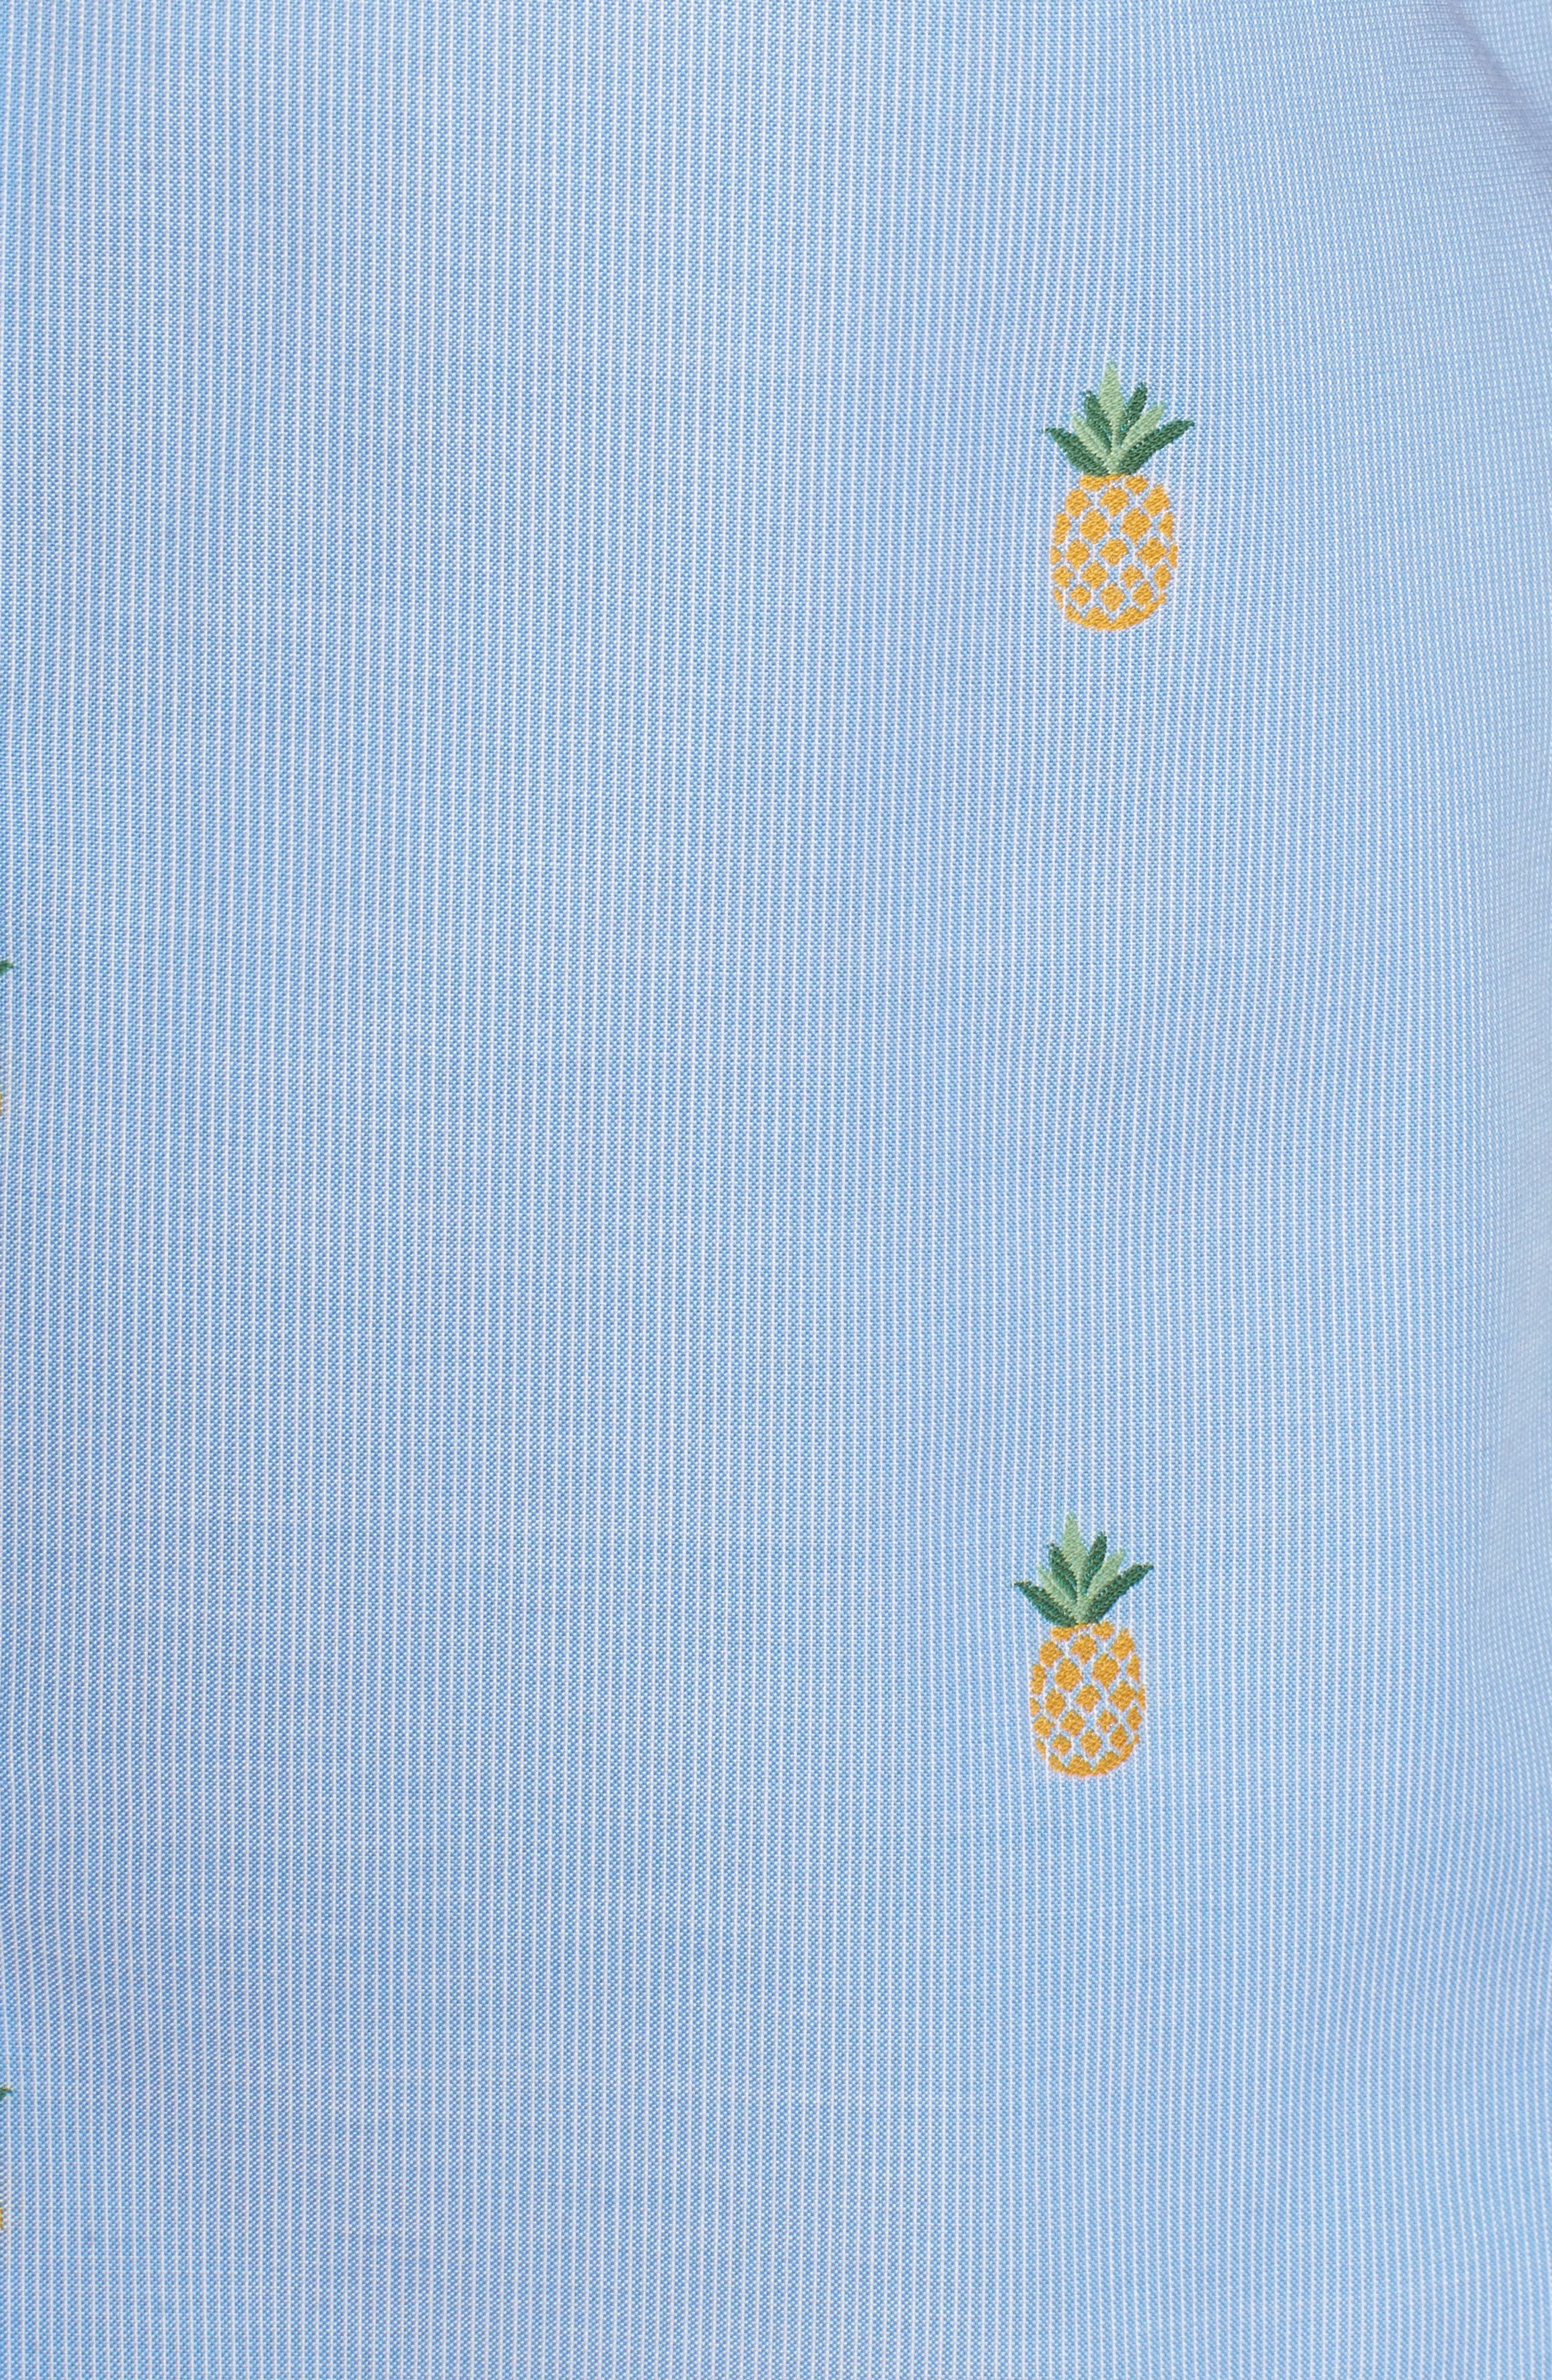 Dole 'N' Row Trim Fit Embroidered Sport Shirt,                             Alternate thumbnail 5, color,                             Blue